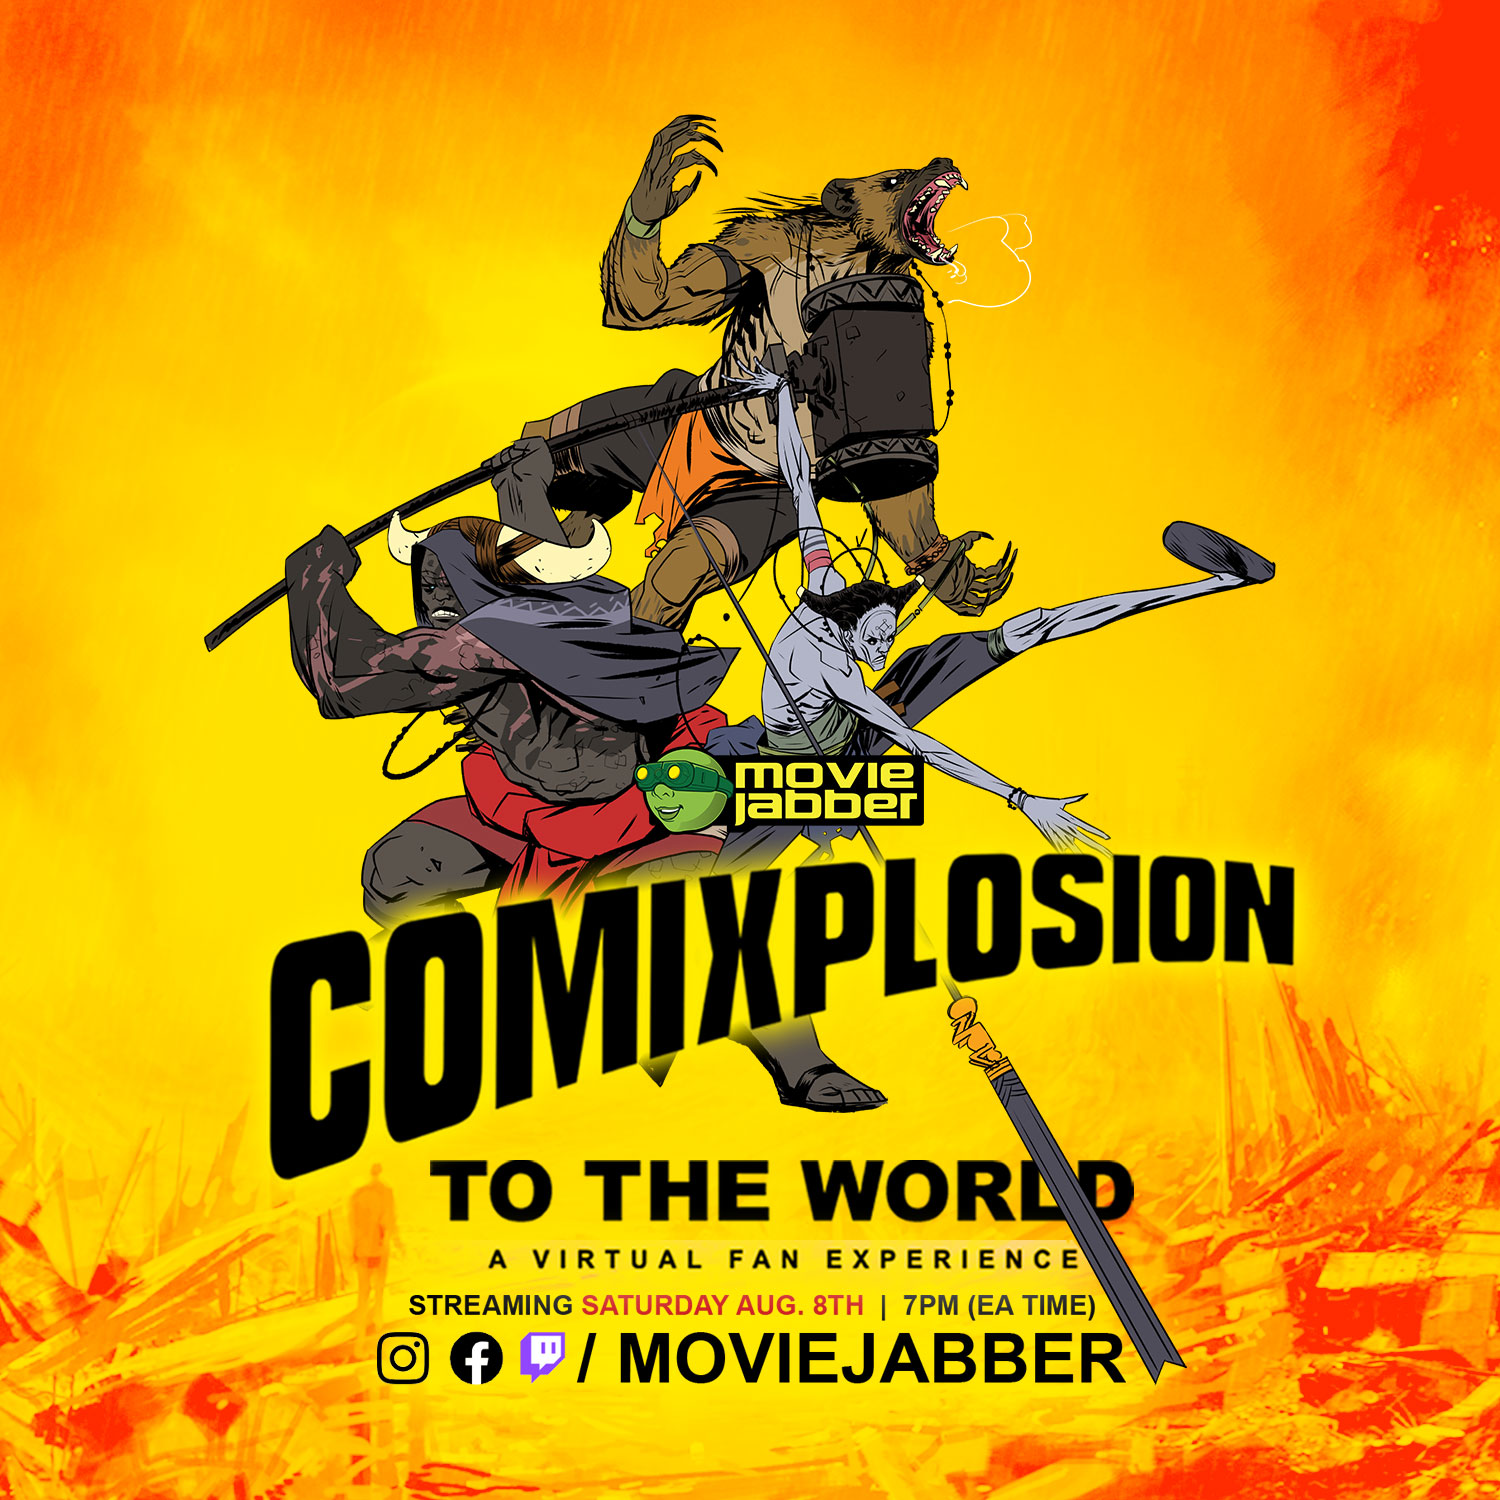 Comixplosion To The World